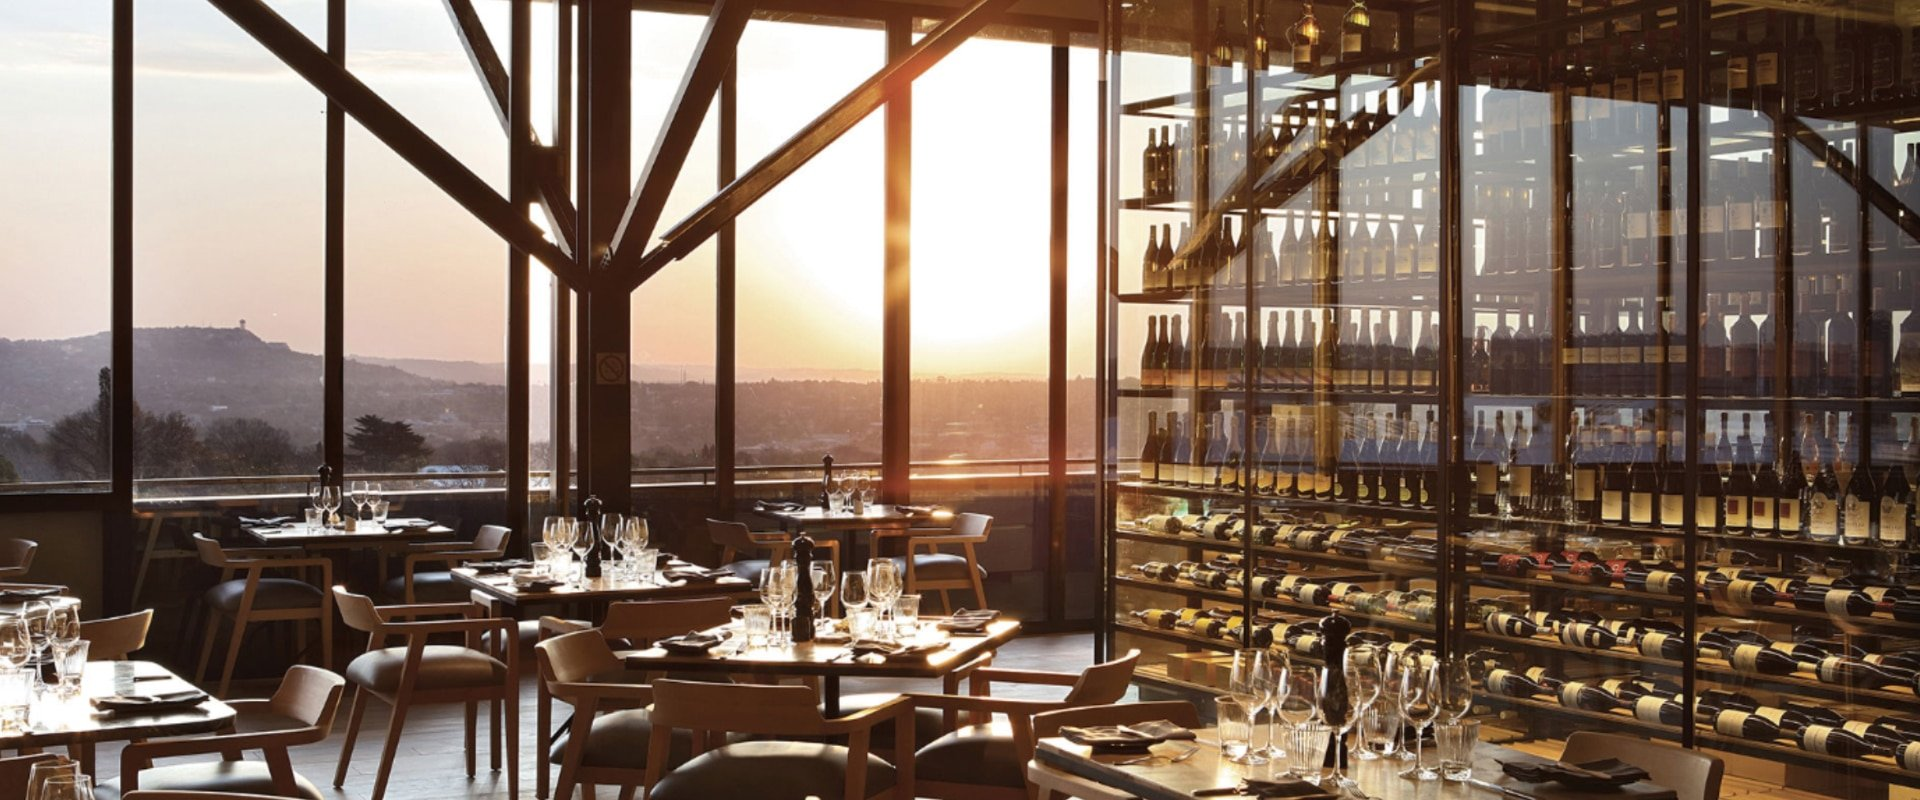 Dine at one of Johannesburg's world class restaurants